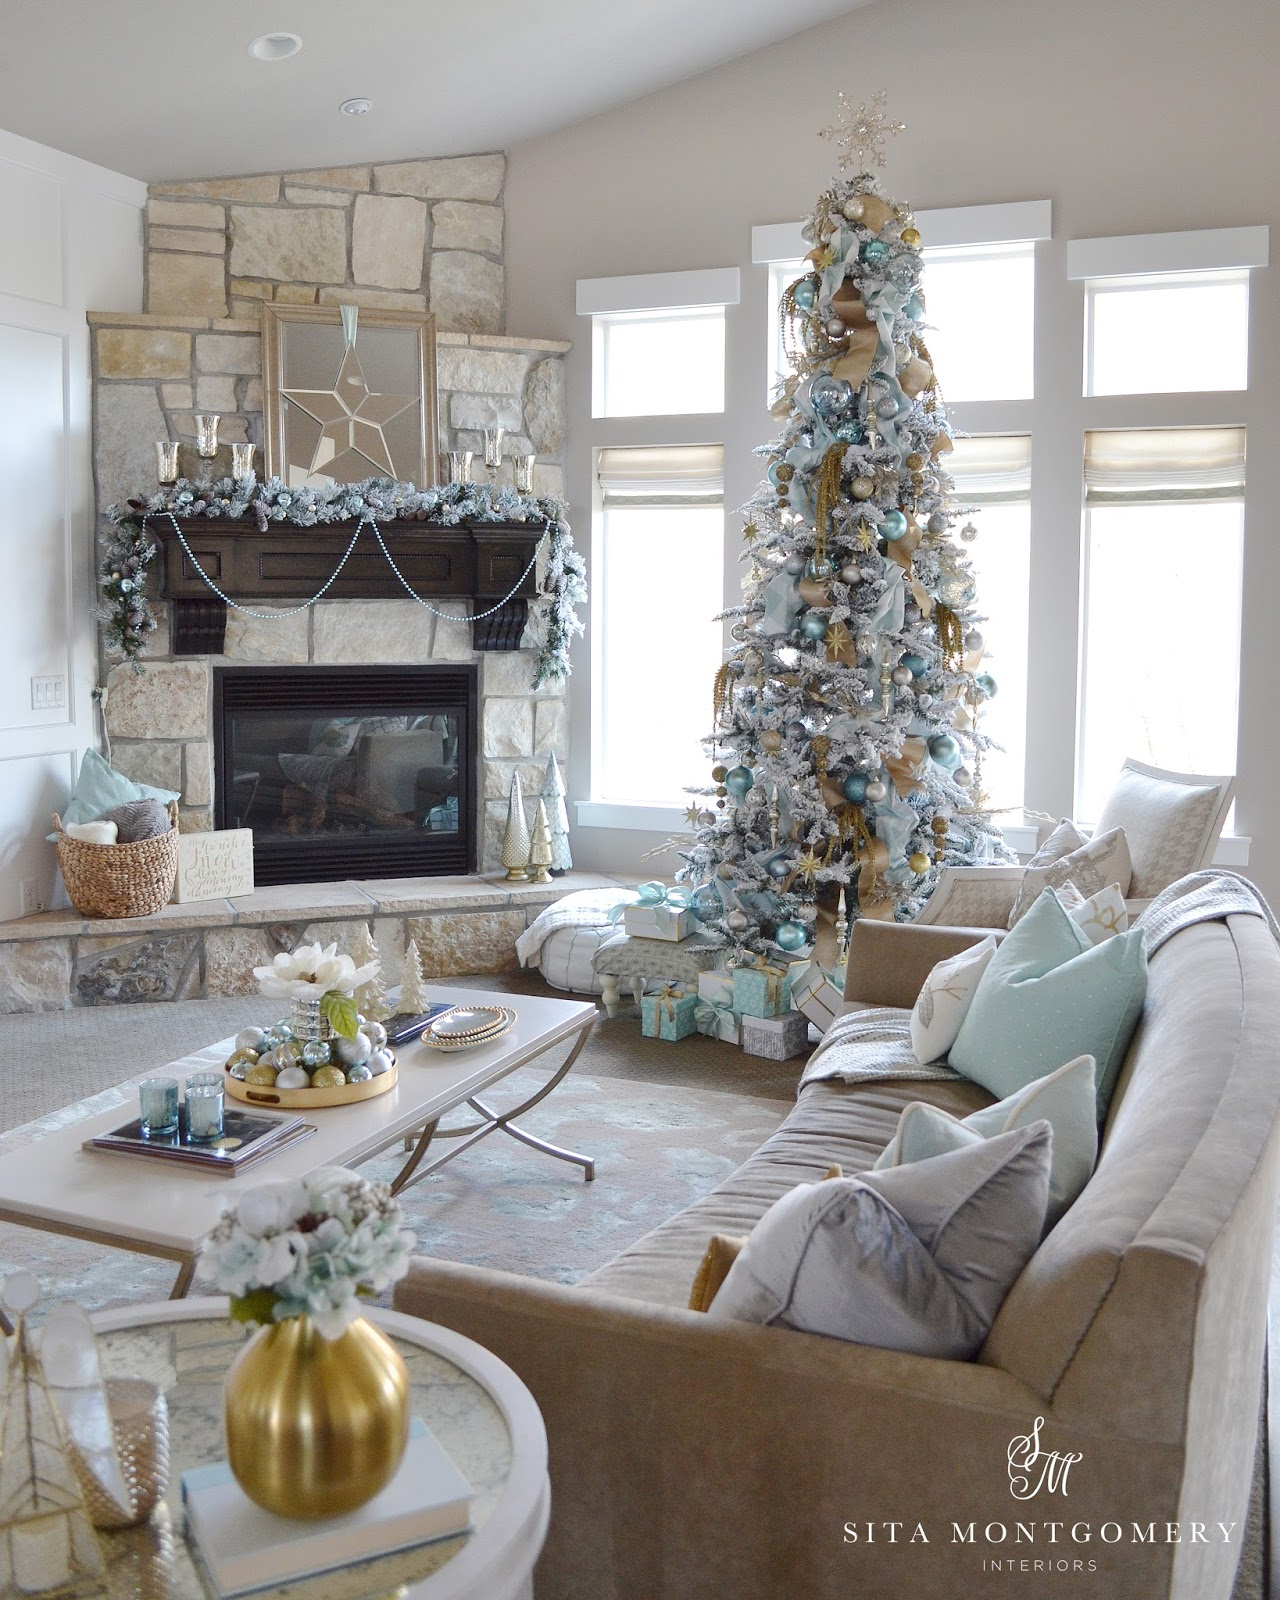 A holiday with heart blog hop sita montgomery interiors - Decorating living room ideas pinterest ...